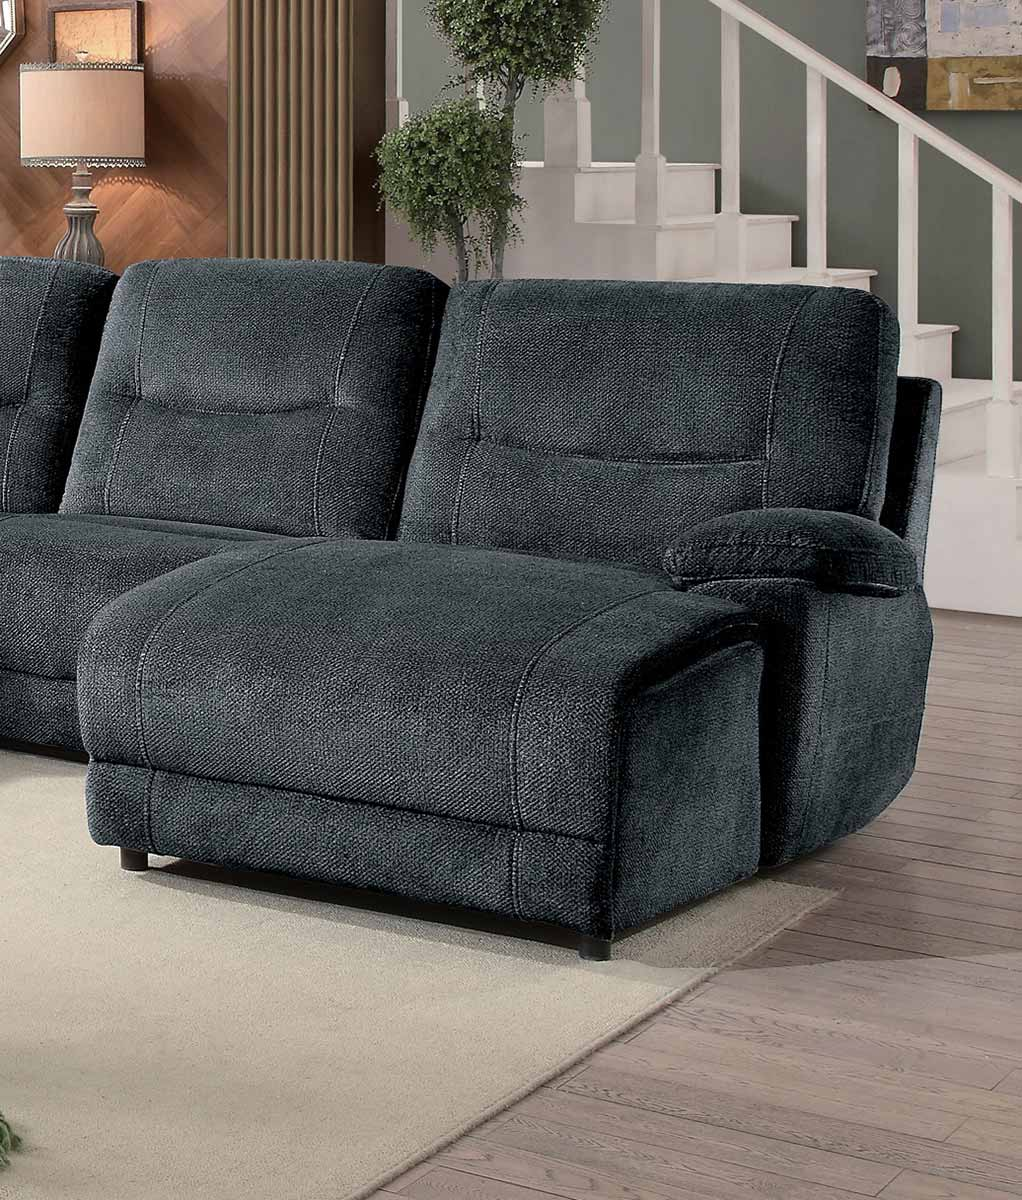 Homelegance Columbus Right Side Facing Reclining Chaise - Push Back - Cobblestone Fabric